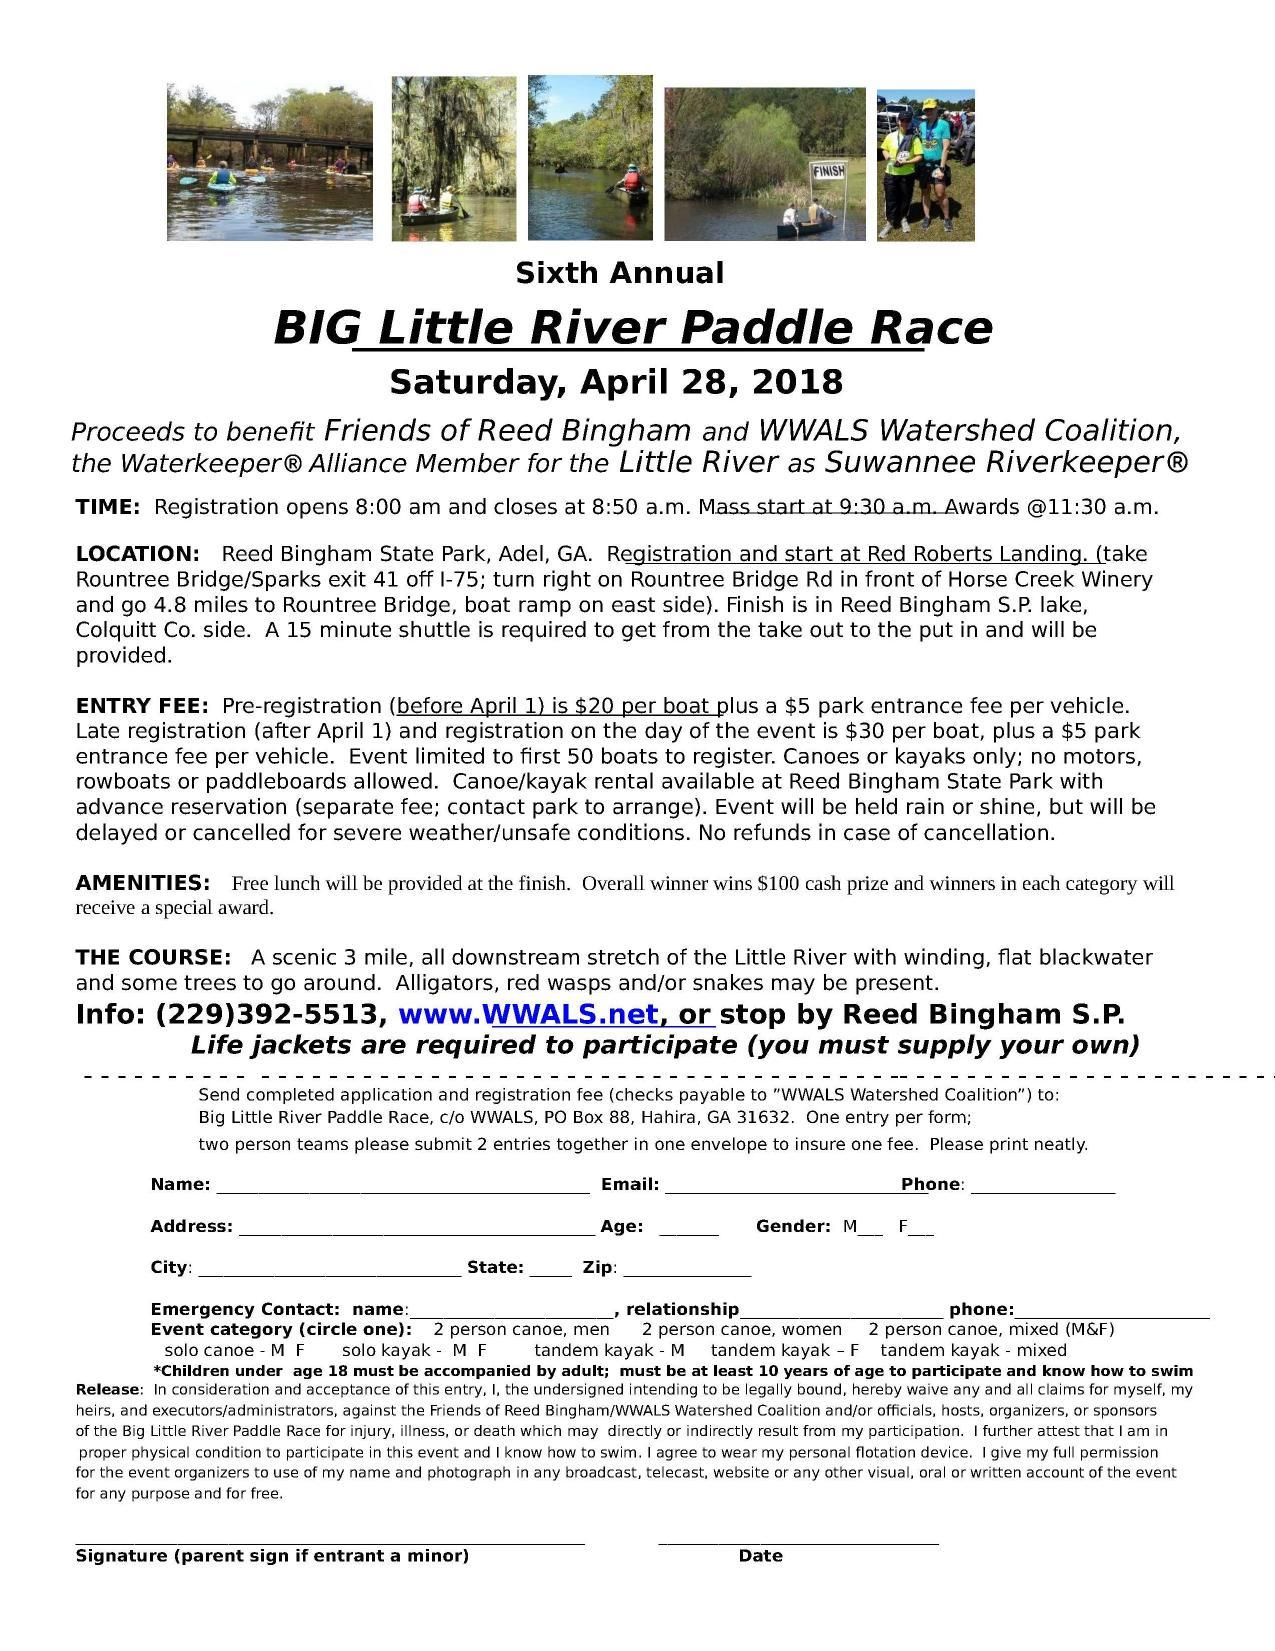 1275x1651 BIG Little River Paddle Race flyer, Page, in BLRPR Poster, by Bret Wagenhorst, for WWALS.net, 28 April 2018